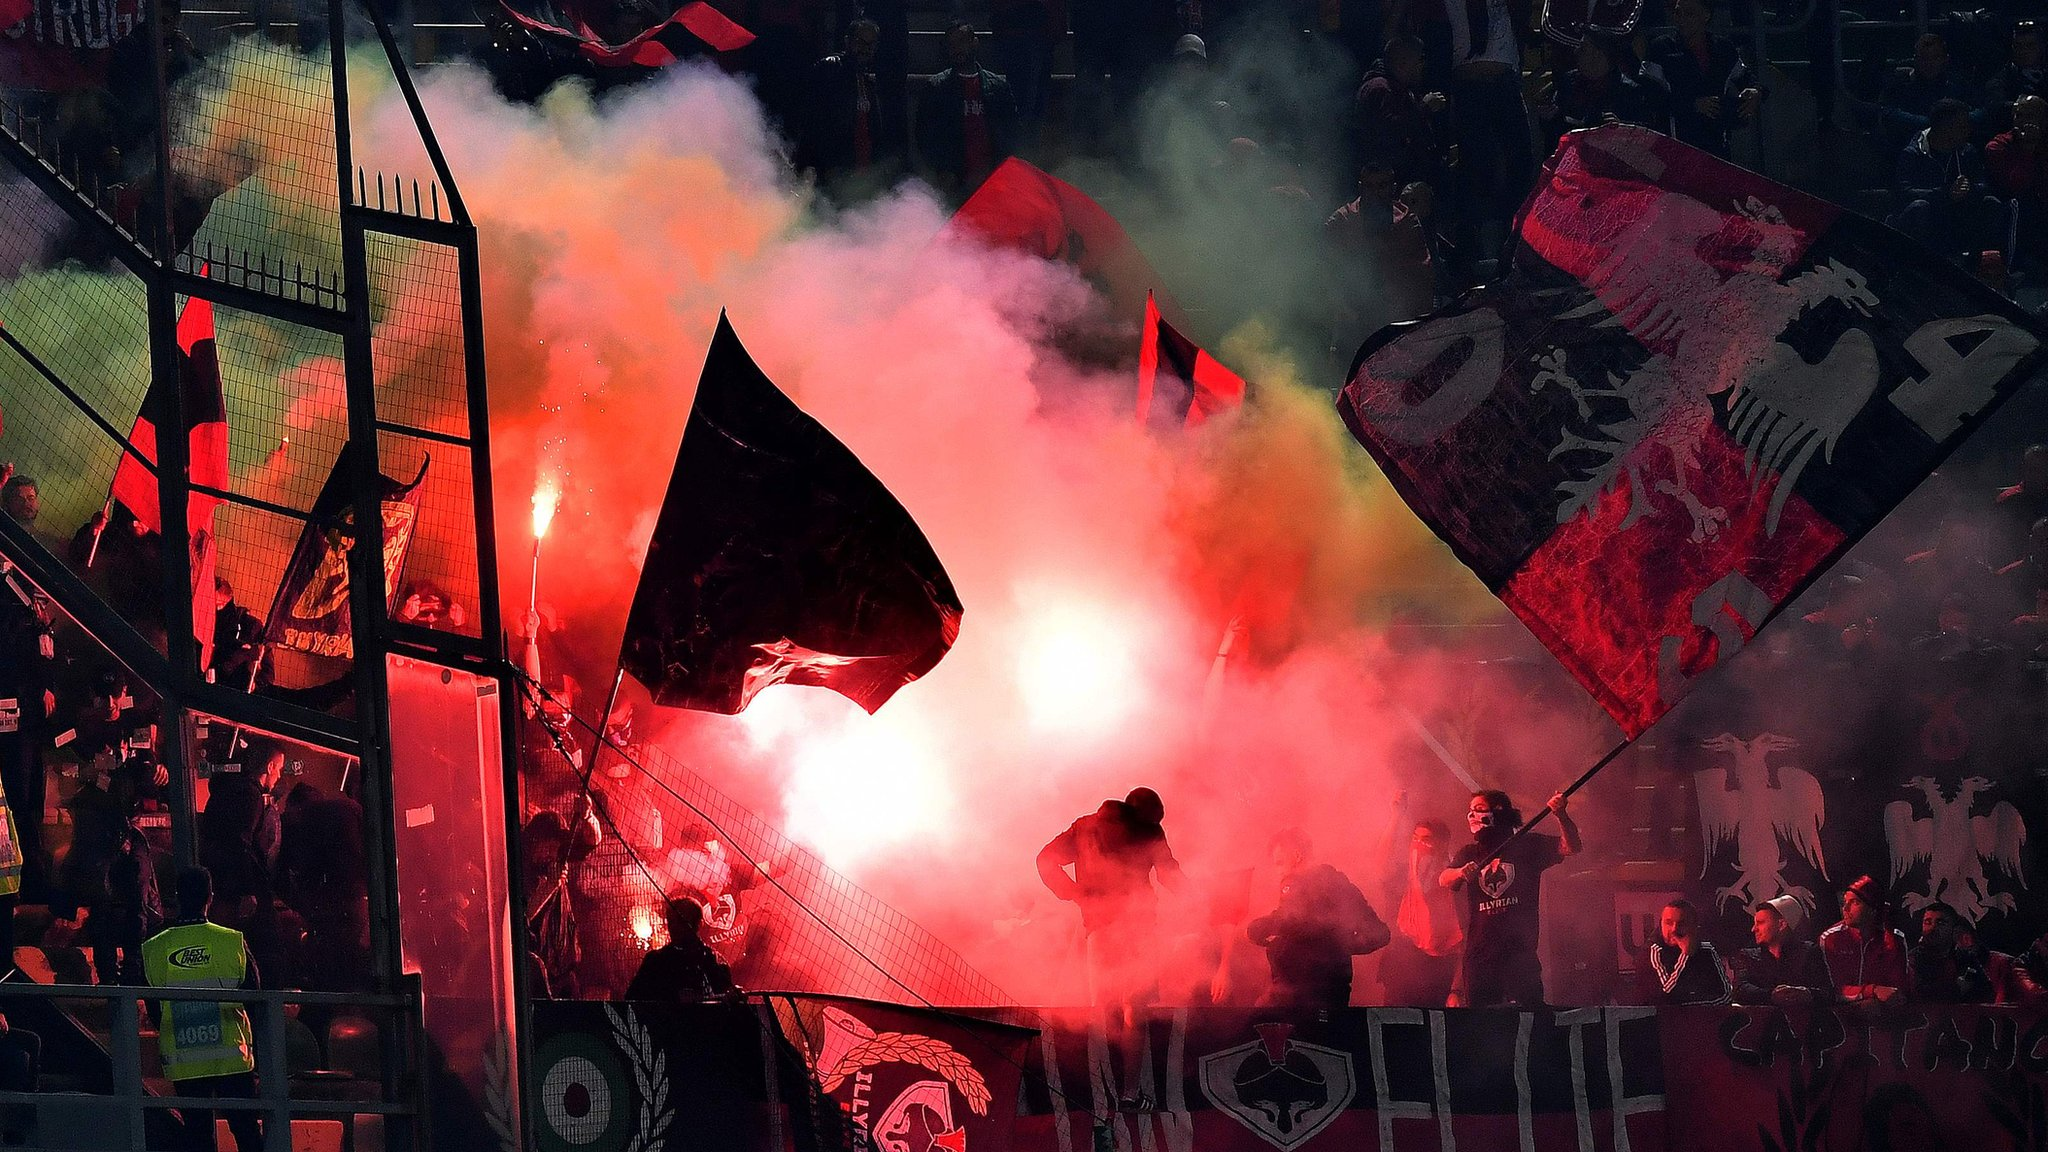 Flares force game to be suspended as Italy win in Buffon's 1000th match